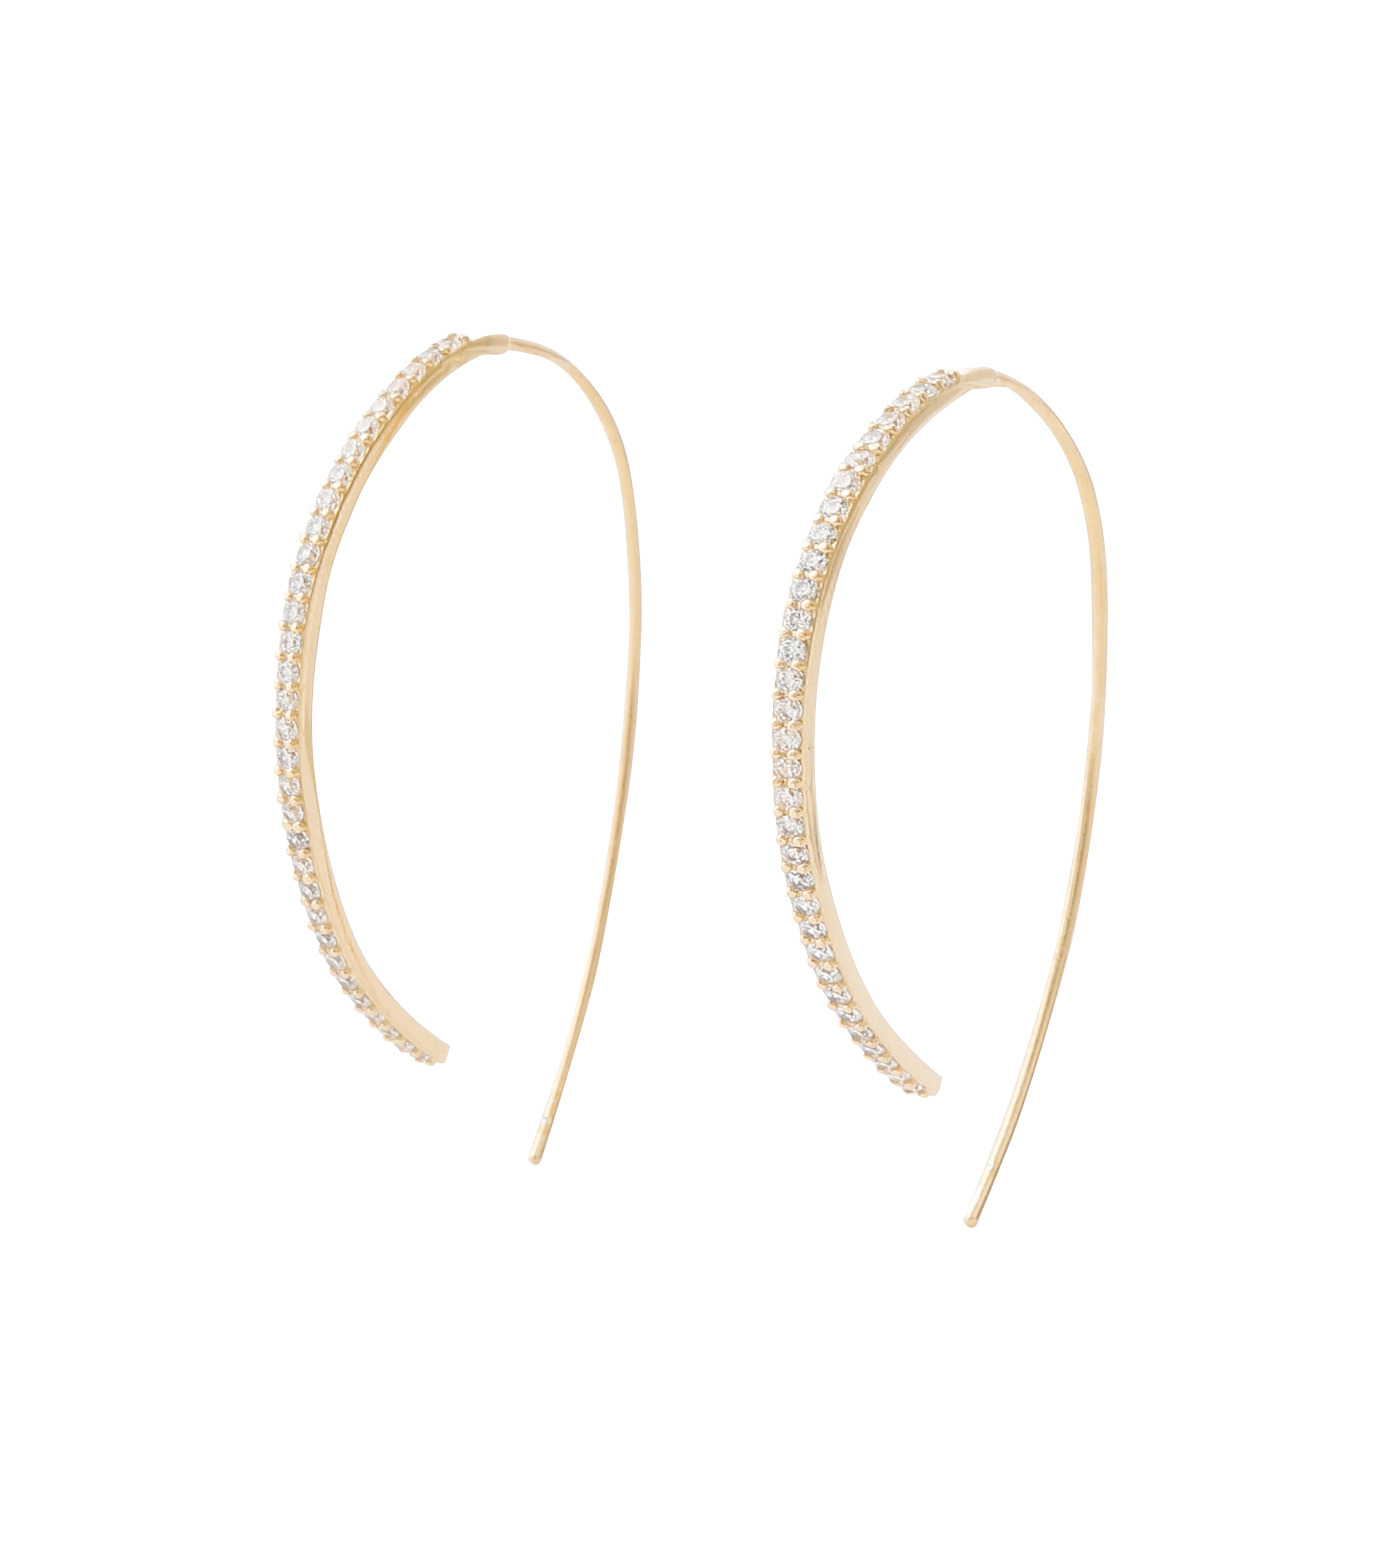 Fallon(ファロン)のPave Threaded Hoops-GOLD-FE11626-2 拡大詳細画像1